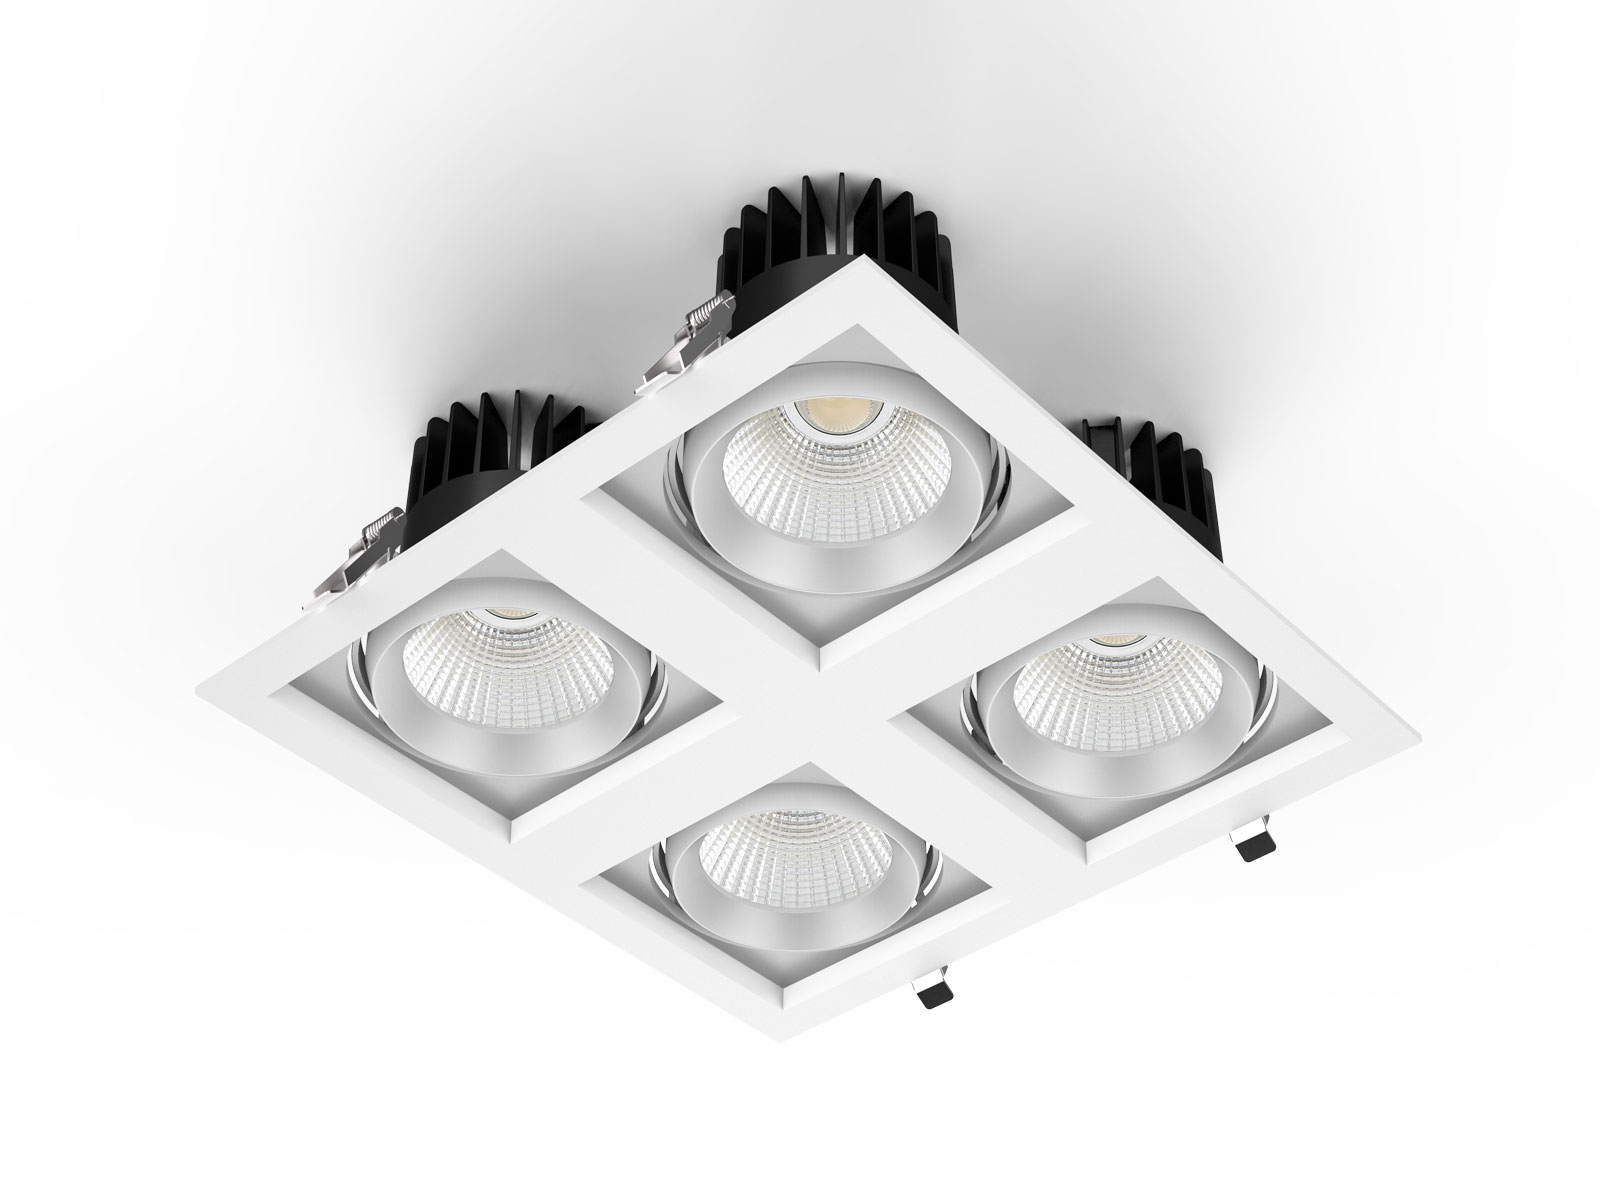 hot sale online 8d0ee b7671 CL113 6inch Dimmable Recessed Luminaire - UPSHINE Lighting